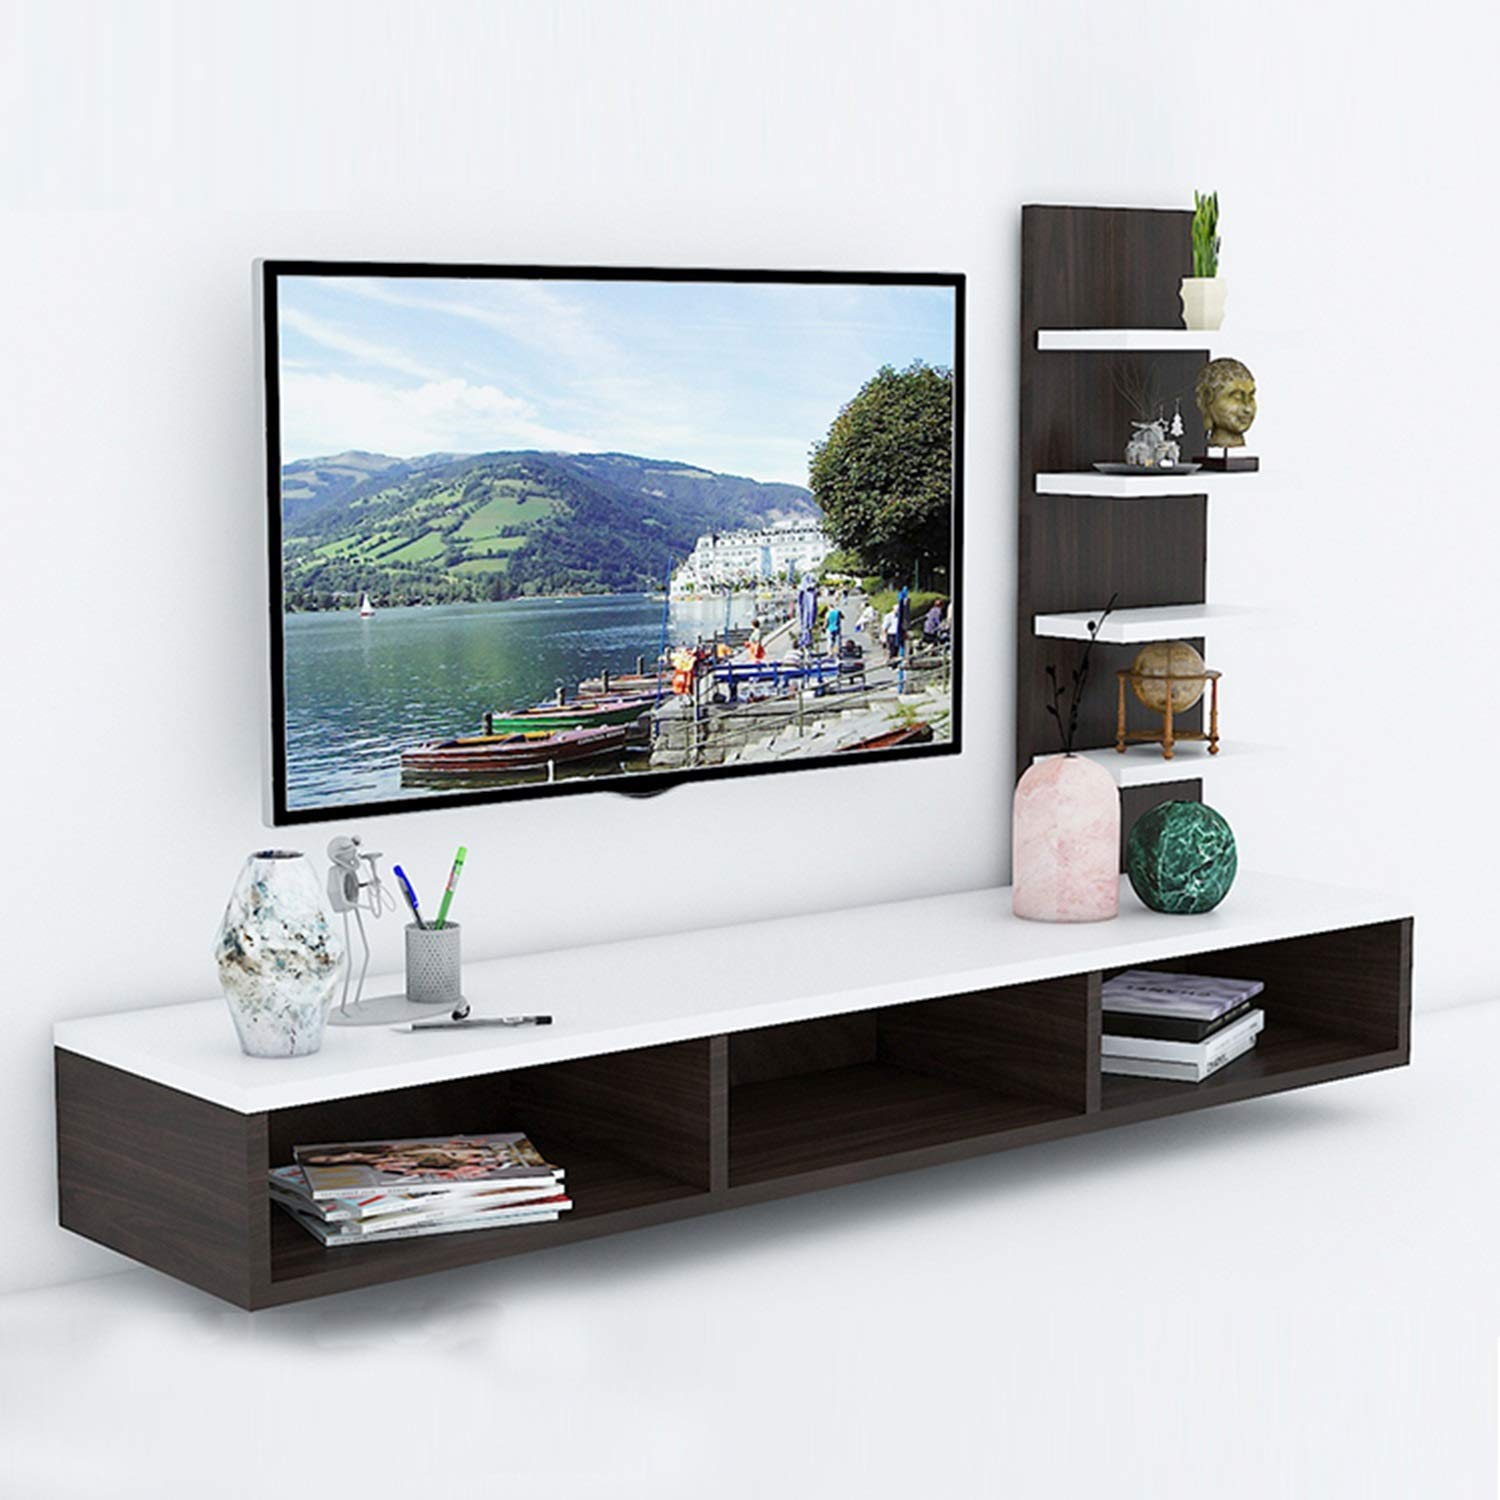 Aart Store Engineered Wood Tv Entertainment Unit With Storage In Furniture In Living Room Wall Amazon In Furniture